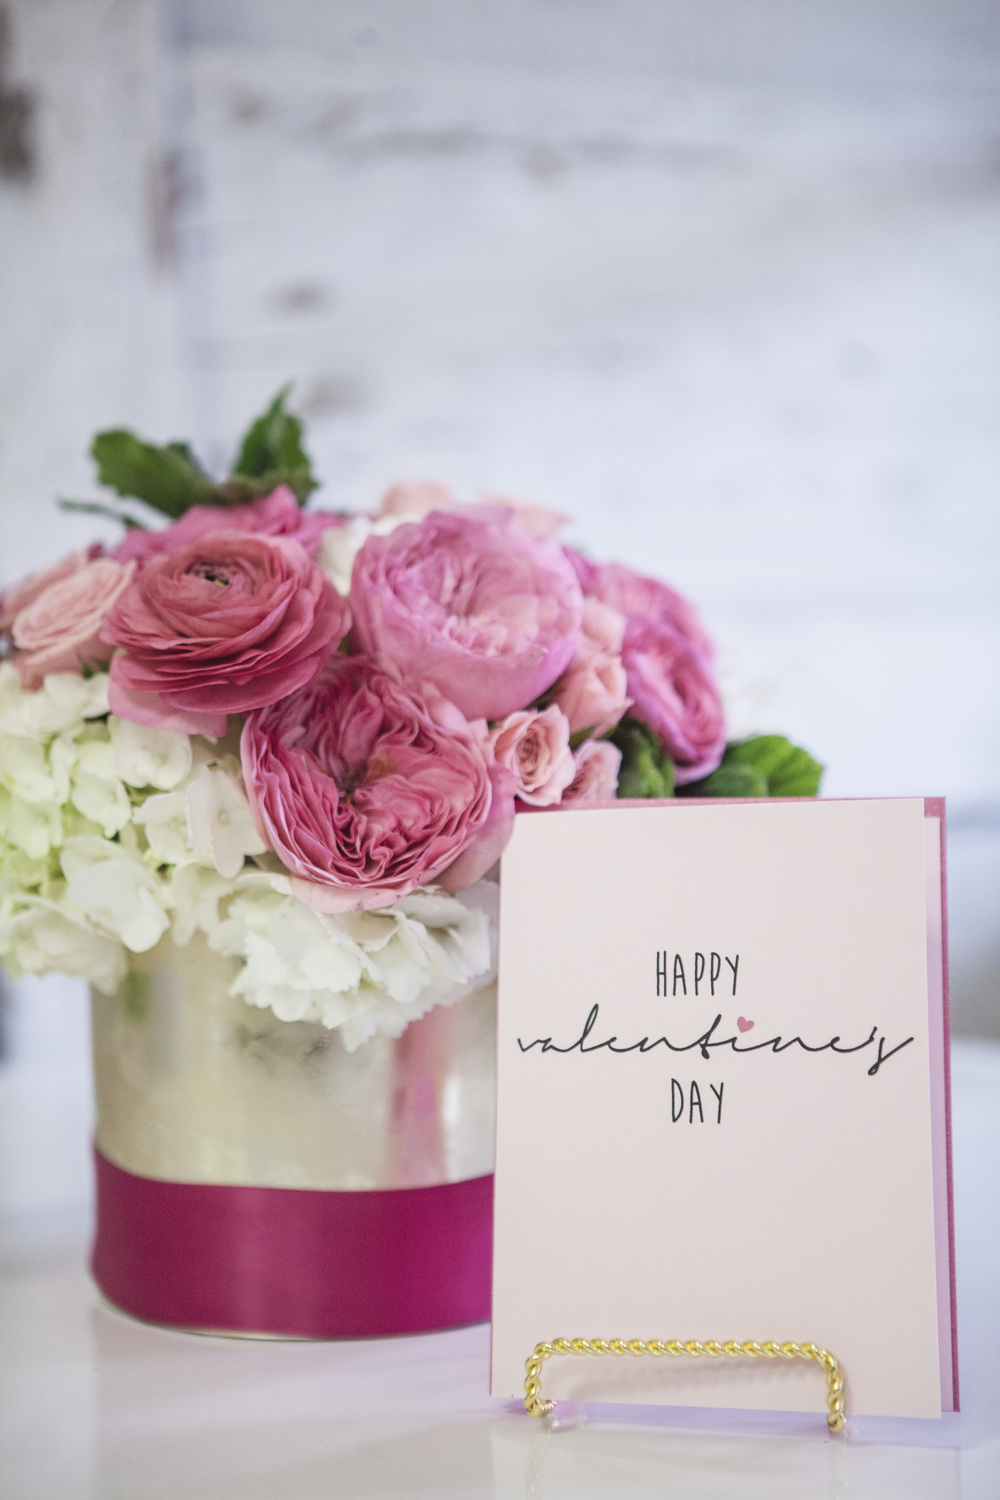 Gilded Cylinder with Fuchsia Band - $80 Featuring Garden Roses, Roses, Ranunculas, Hydrangea & Scented Geranium Leaves. Includes your choice of greeting card. Upgrade Available -$15 (Additional Ranunculas & Tulips)